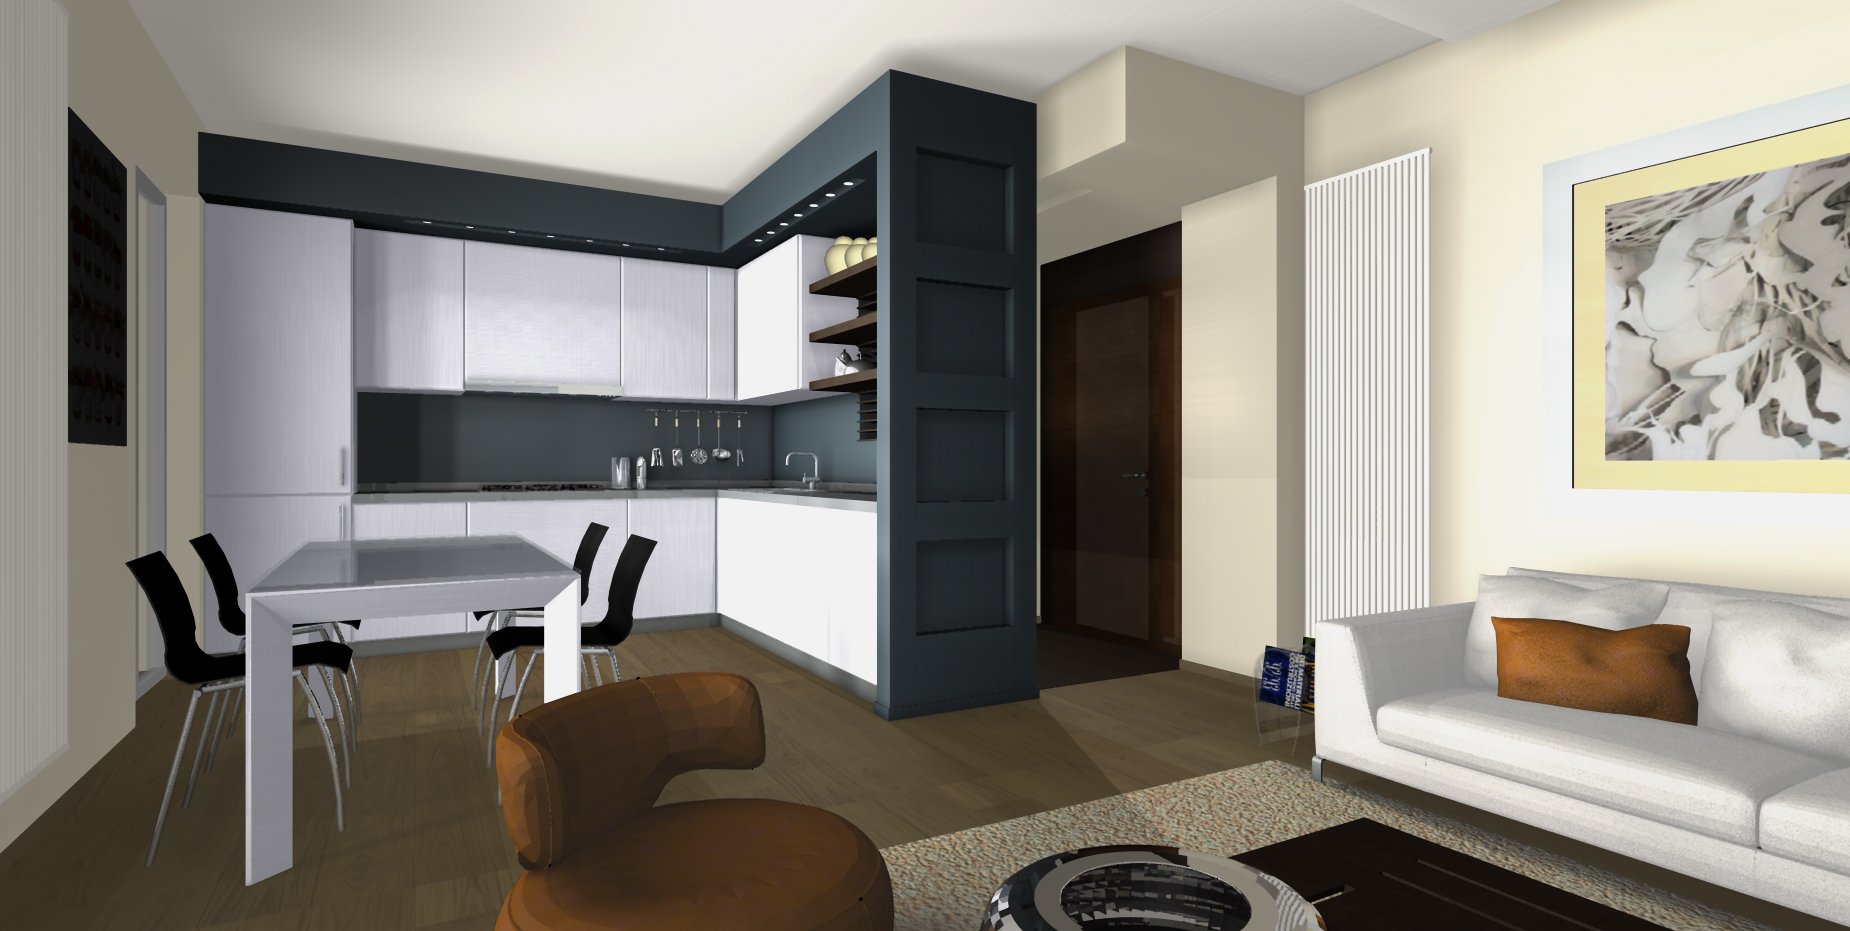 Appartamento con open space architetto facile for Zona giorno design